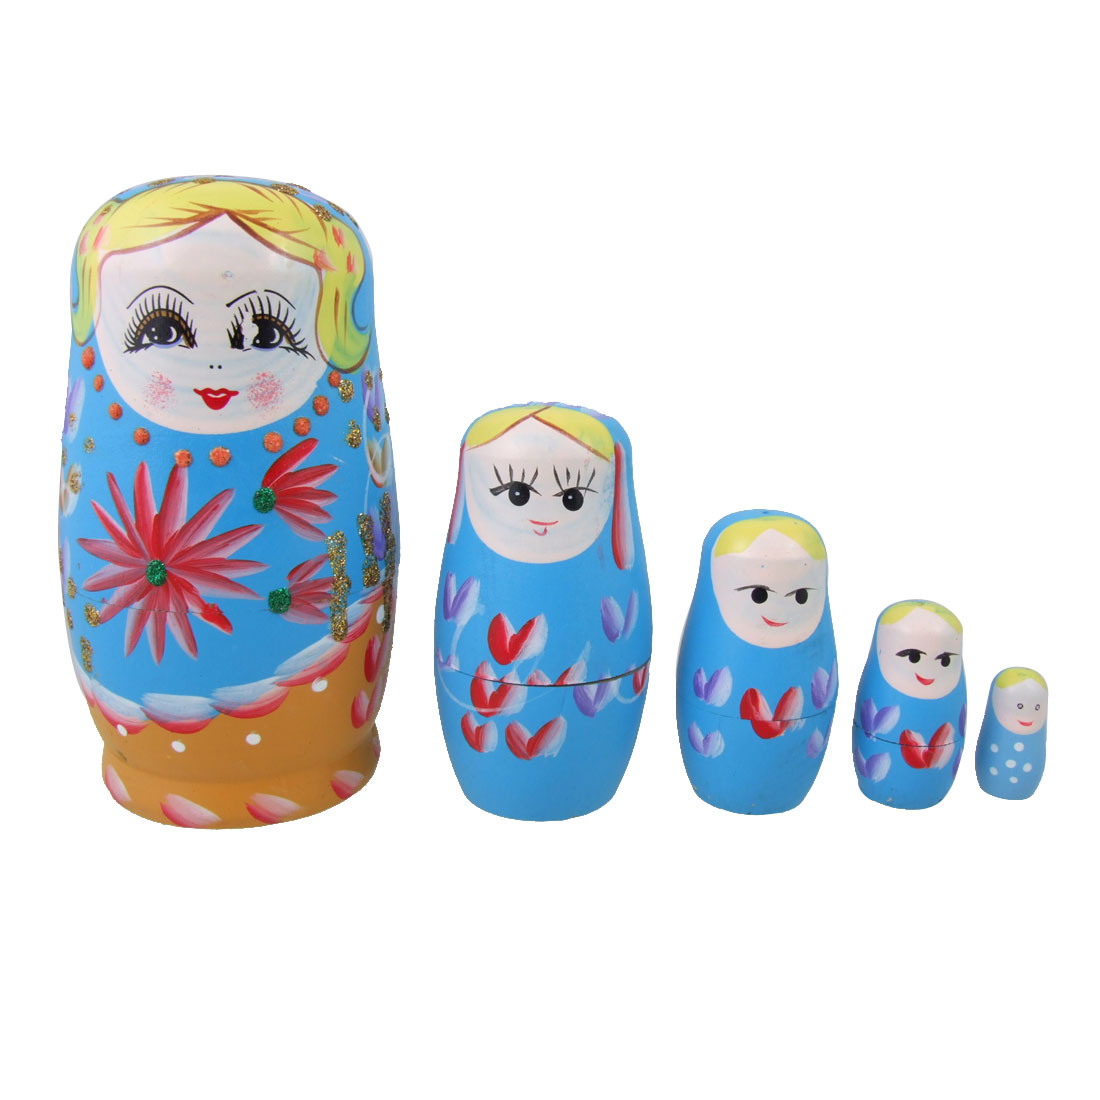 Glittery Plant Flower Blue Yellow Nesting Russian Dolls 5 Pcs